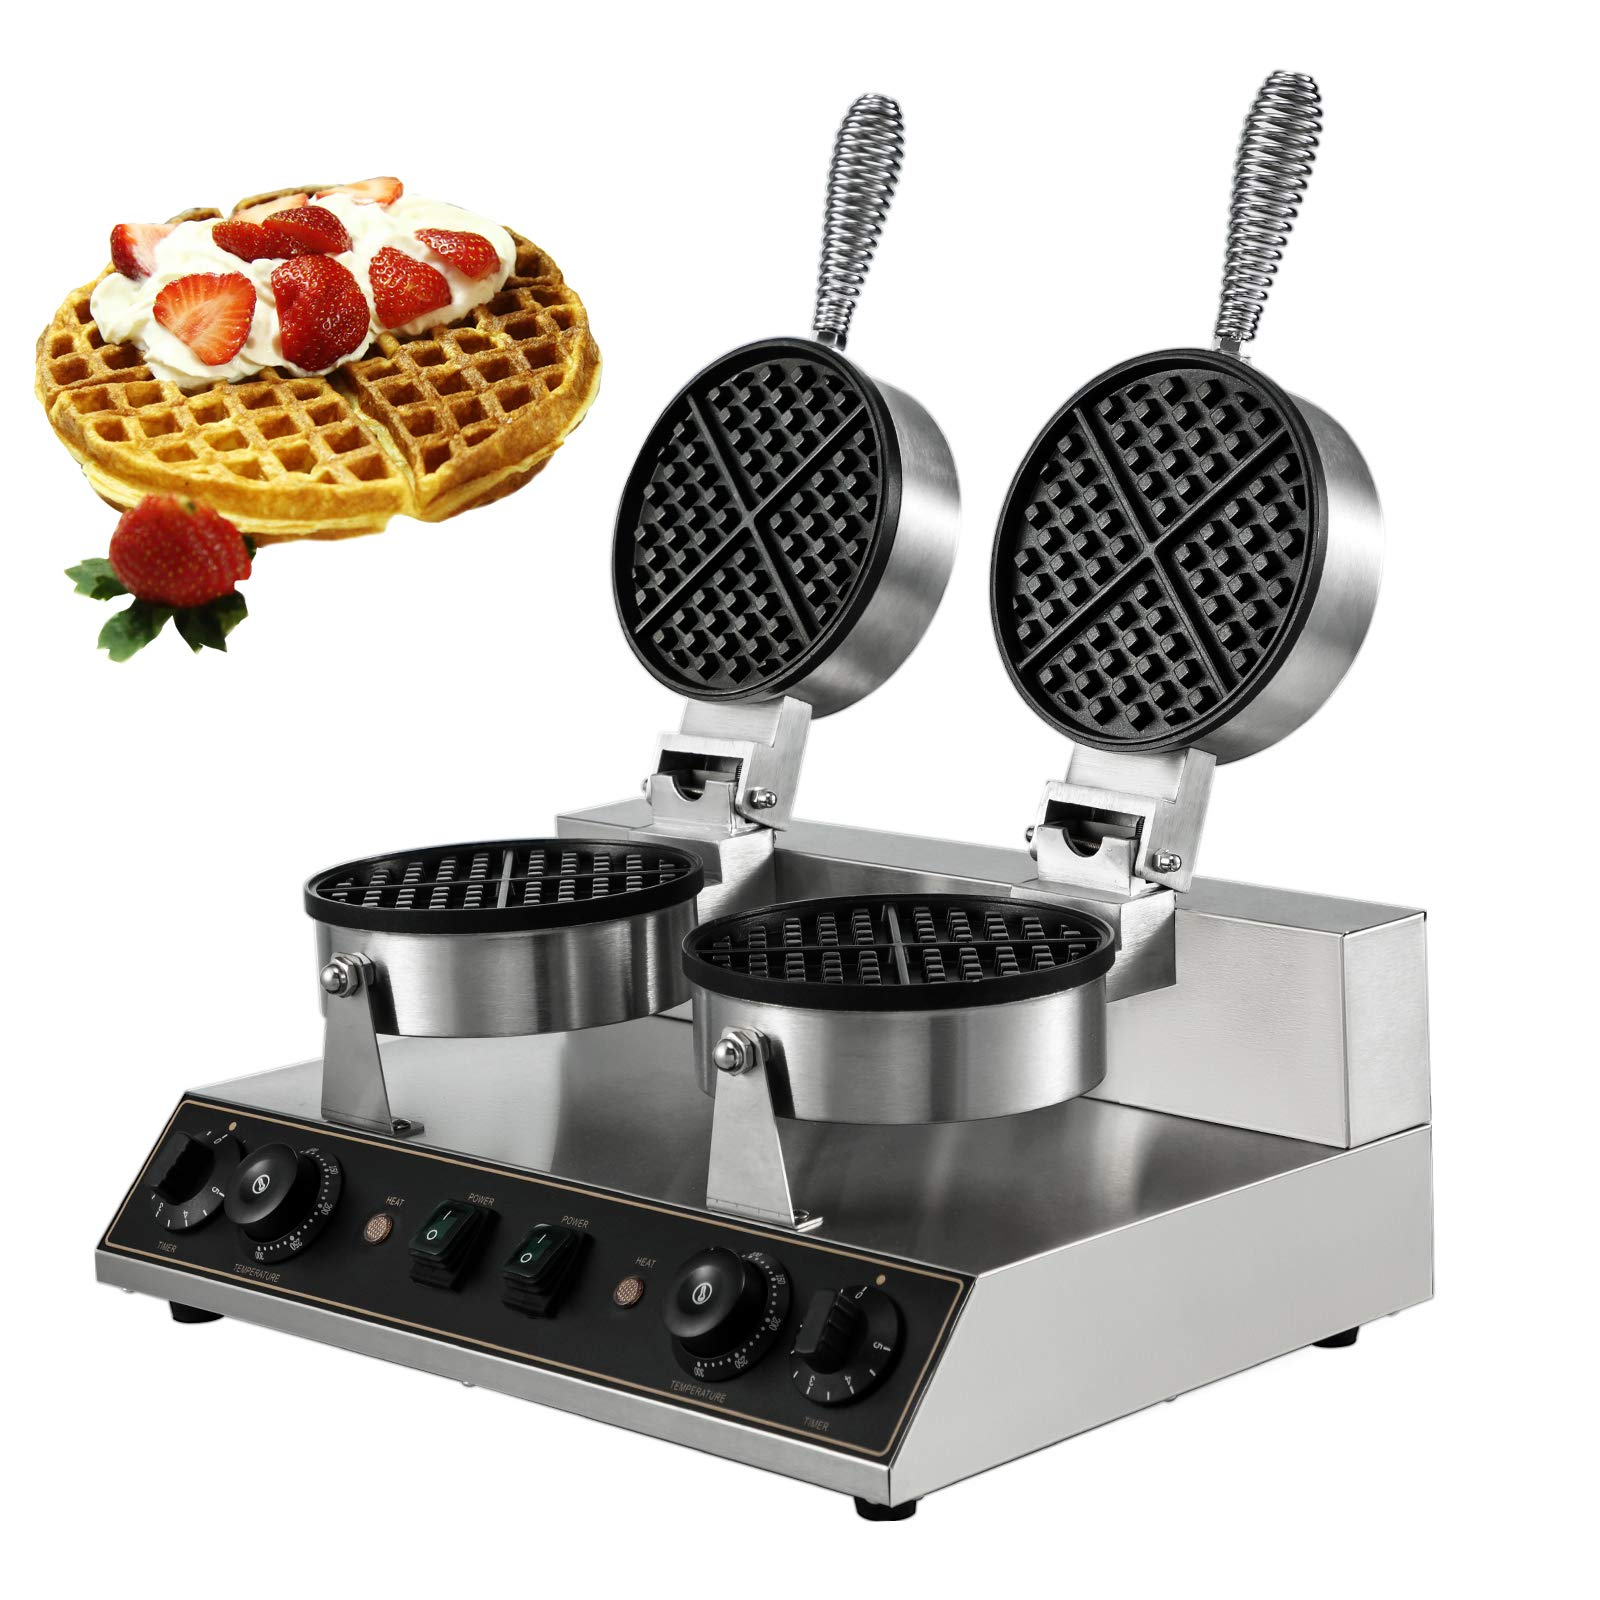 VBENLEM 110V Commercial Waffle Maker Nonstick 2400W Electric Waffle Machine Stainless Steel Temperature and Time Control Round Waffle Iron 8MM/0.32inch Deep Suitable for Restaurant Snack Bar